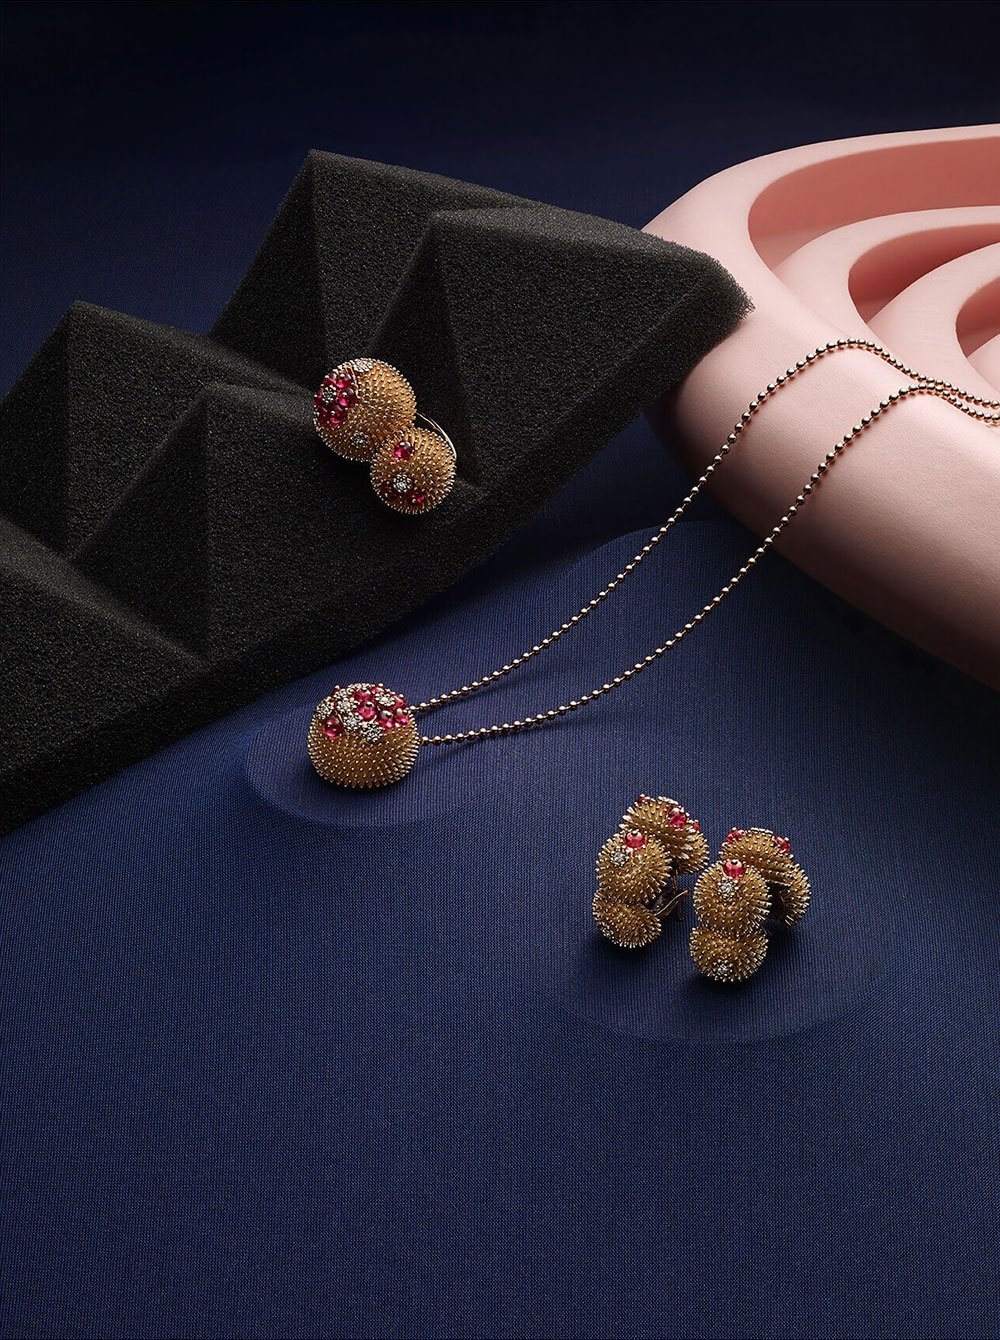 A collection of Cartier jewellery